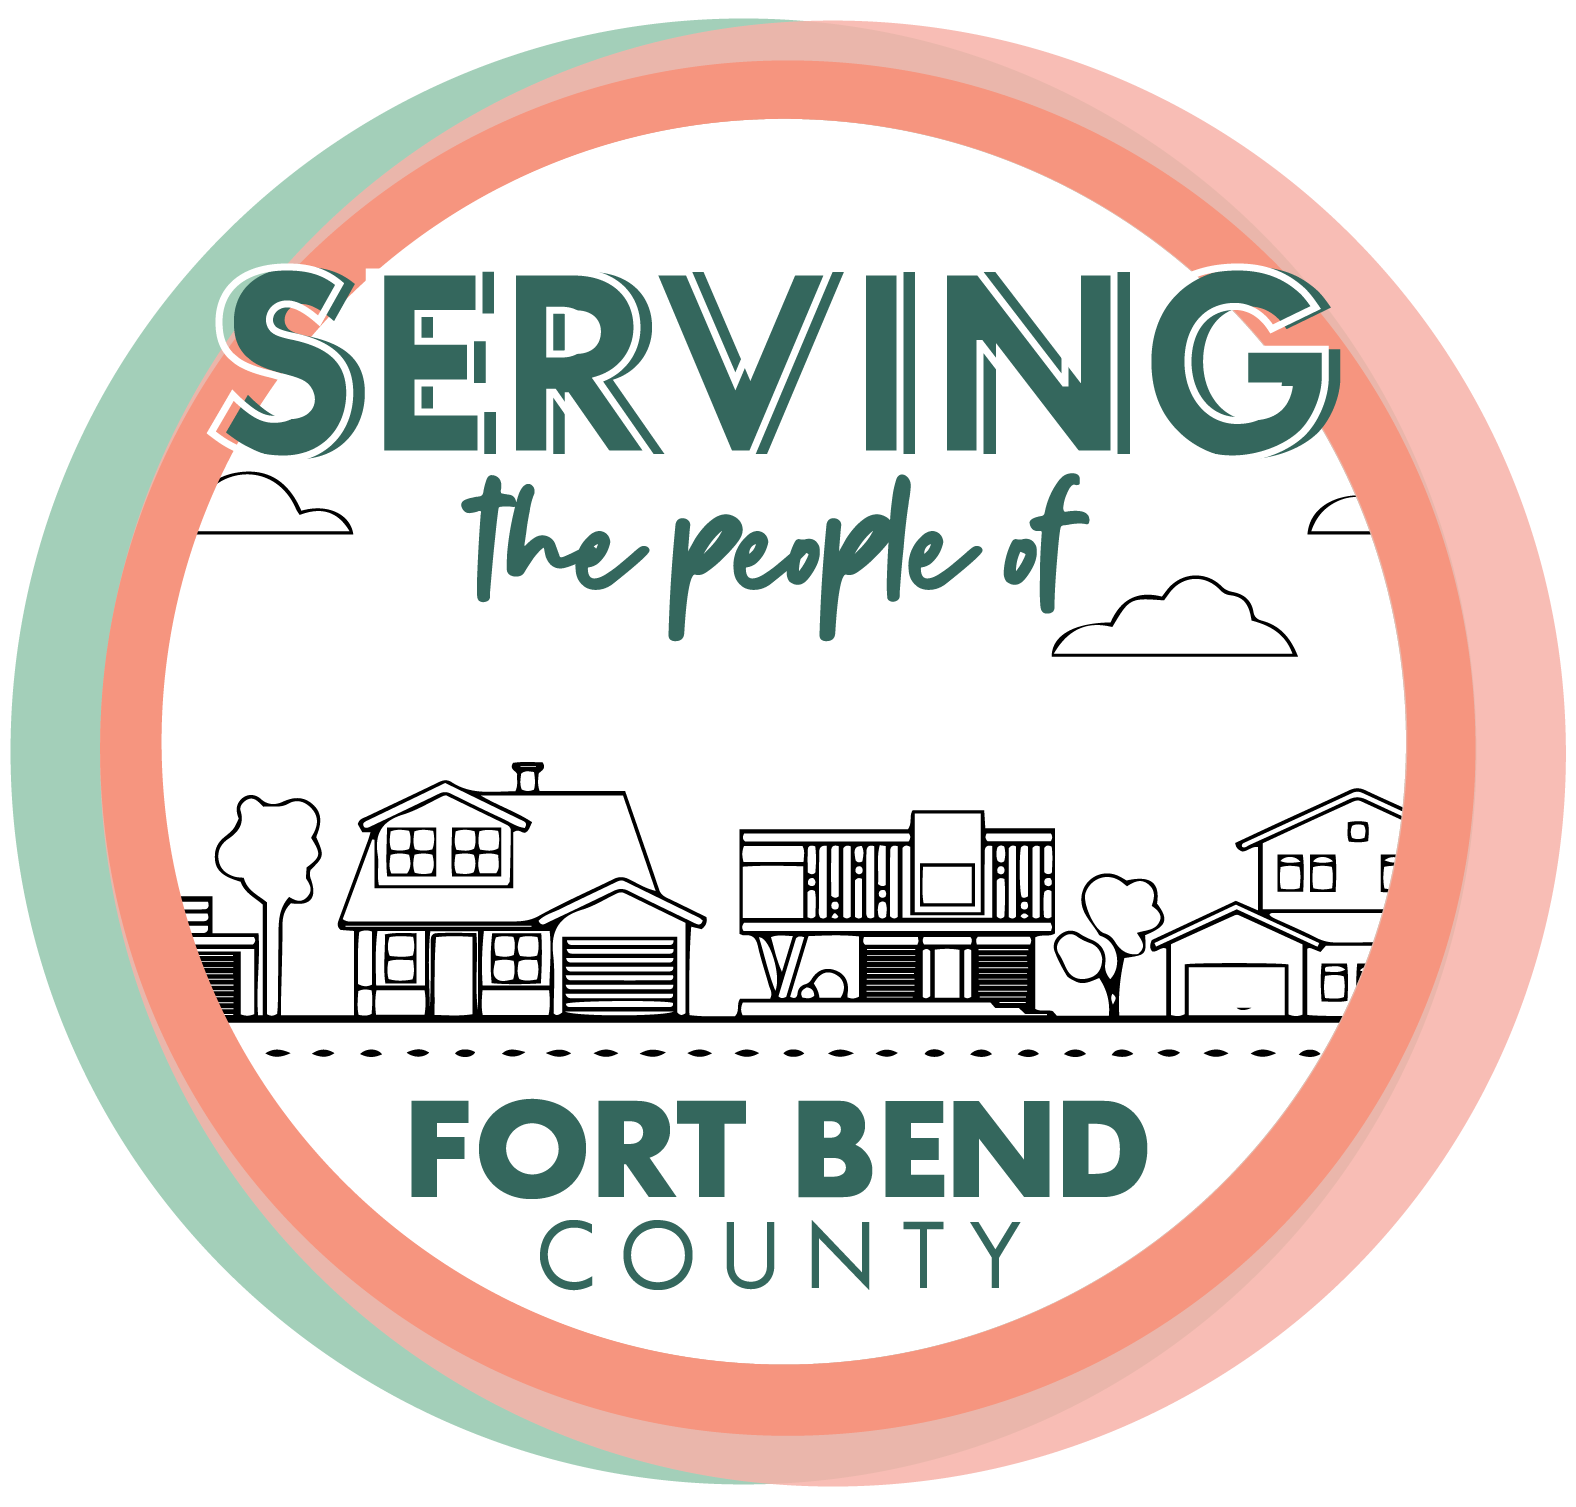 The Rosenberg Housing Authority - Serving the People of Fort Bend County